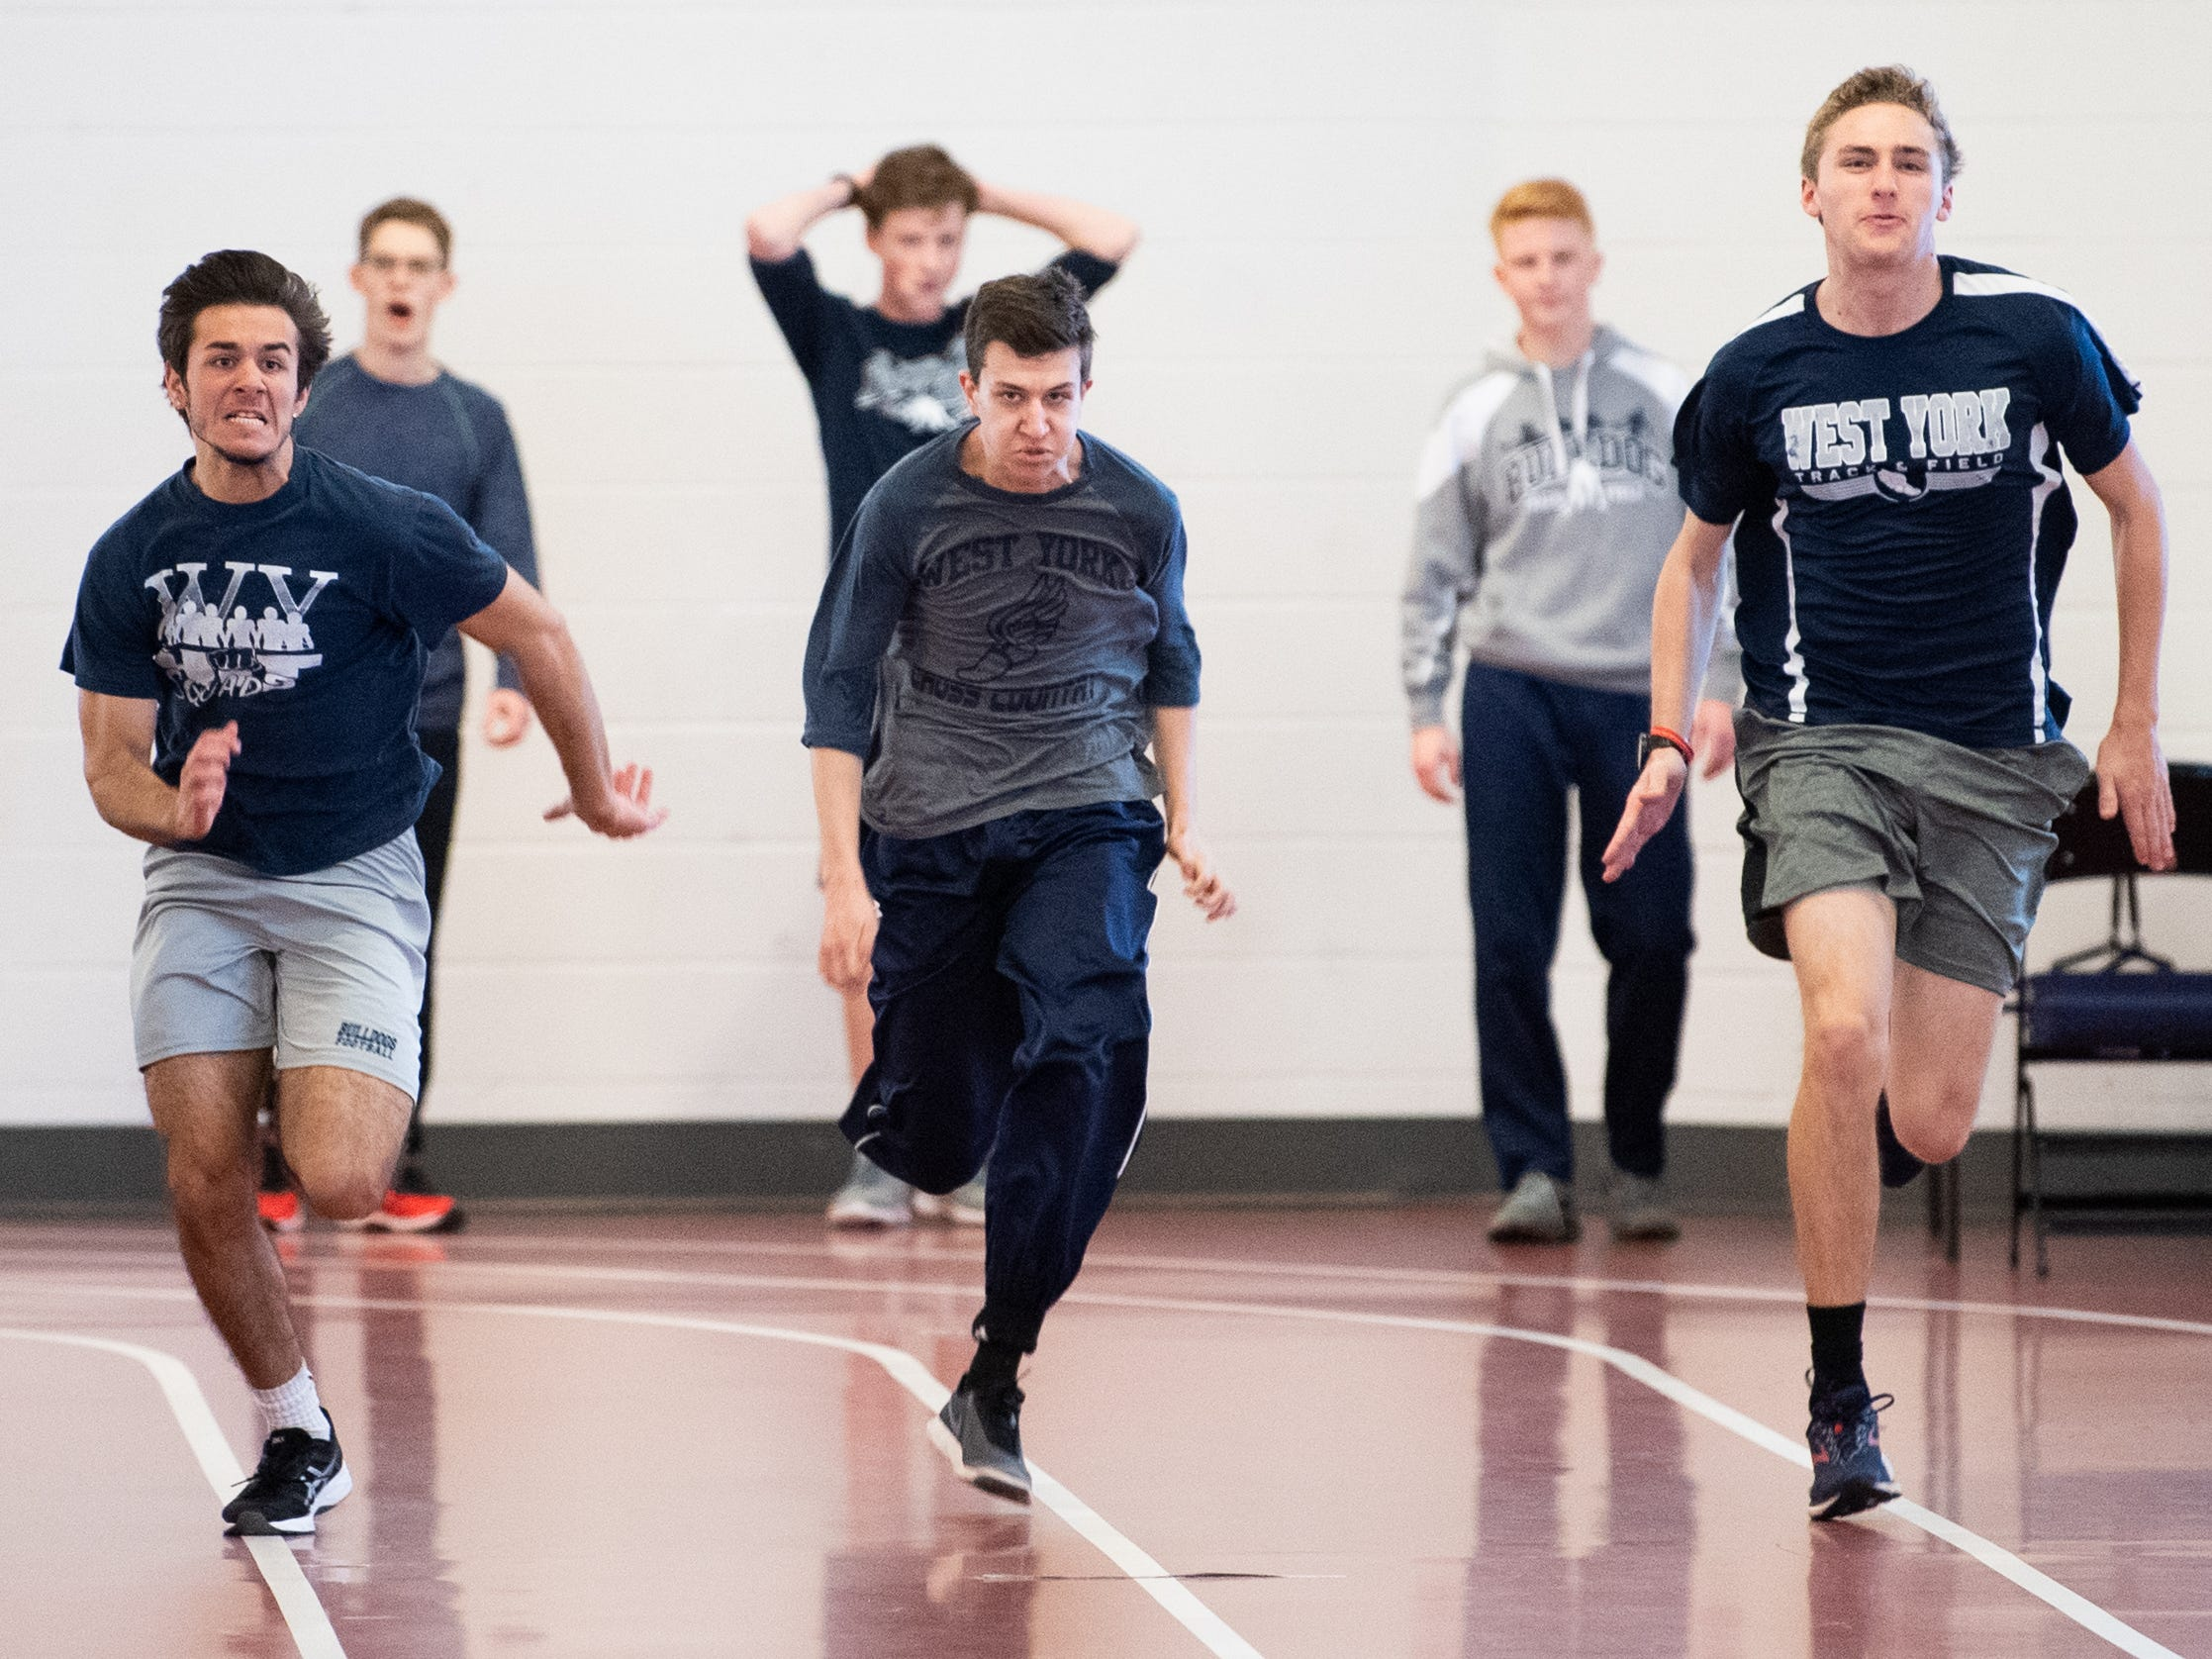 West York sprinters race each other on the indoor track, March 5, 2019.